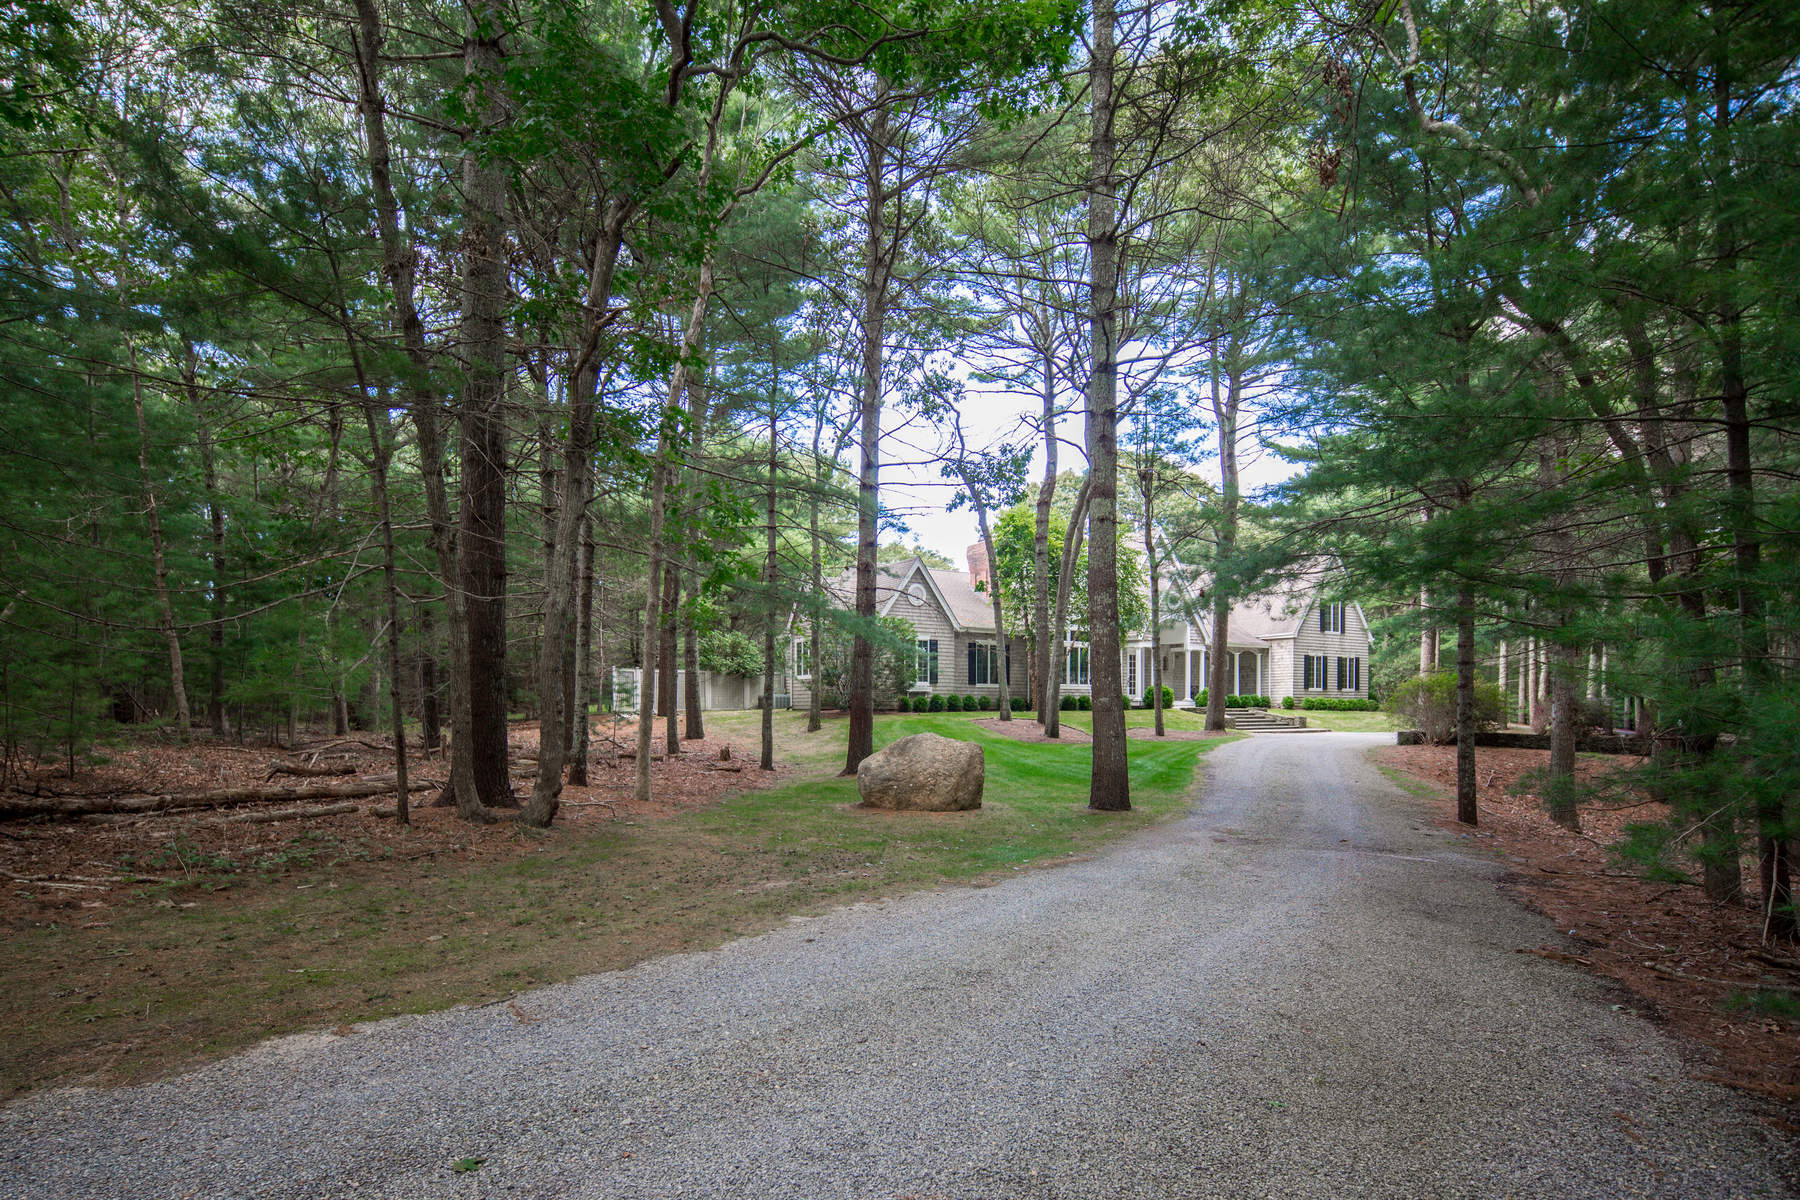 Single Family Home for Sale at The Best Of All Seasons 22 Bull Run, East Hampton, New York, 11937 United States